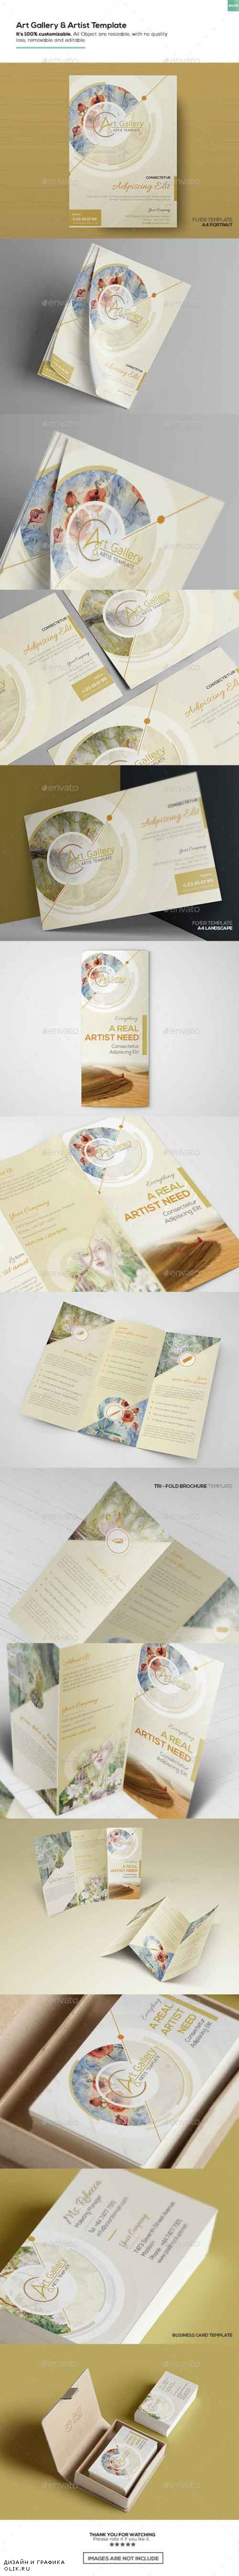 Art Gallery & Artist - Sets Template 15417487